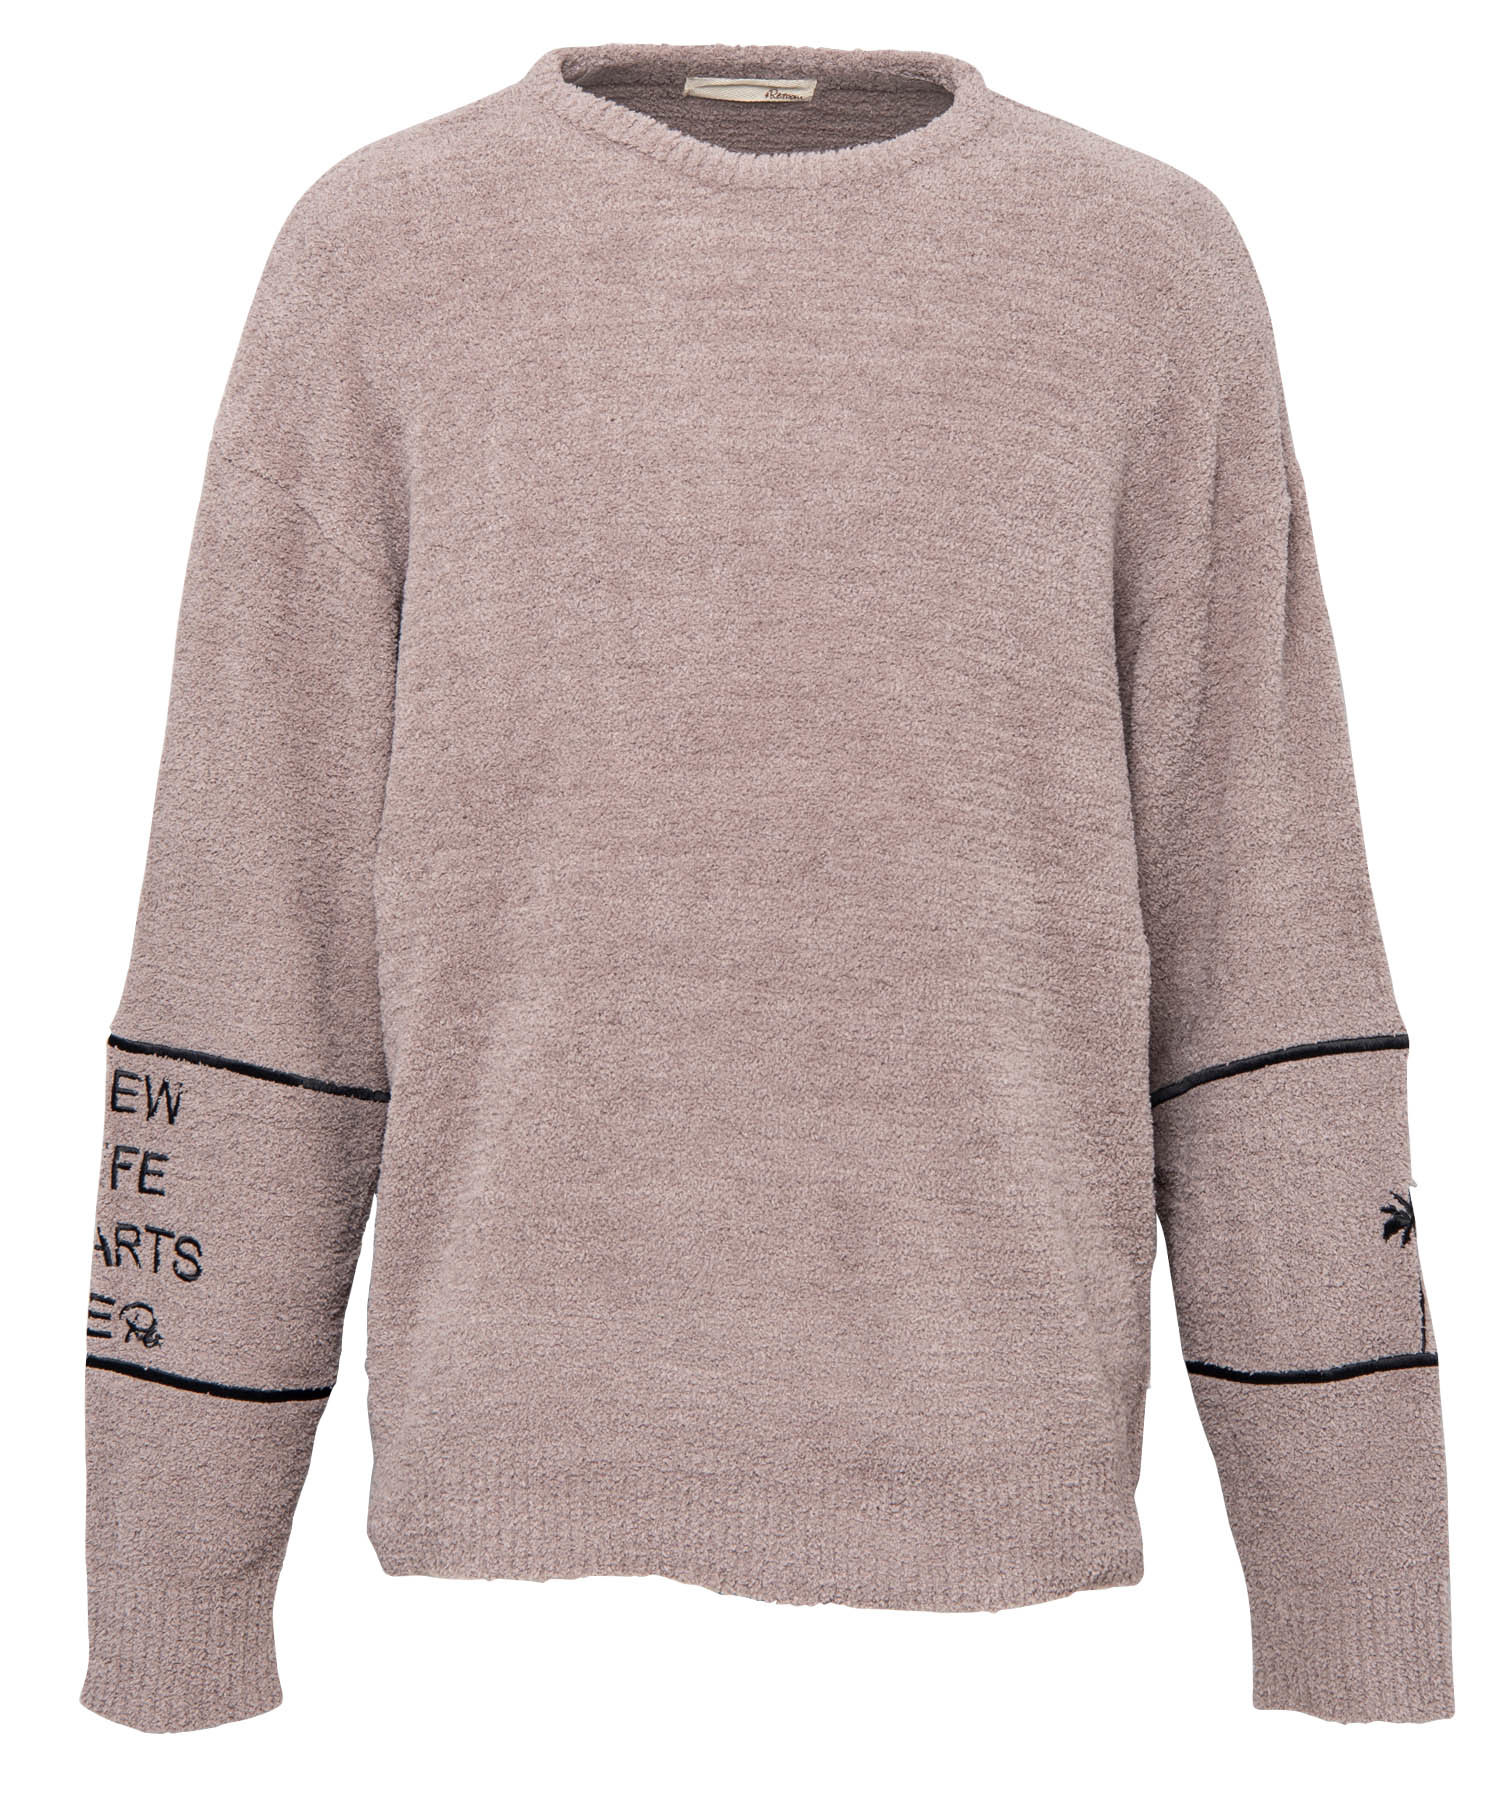 ARM EMBROIDERY CREW NECK MALL KNIT[REK050]